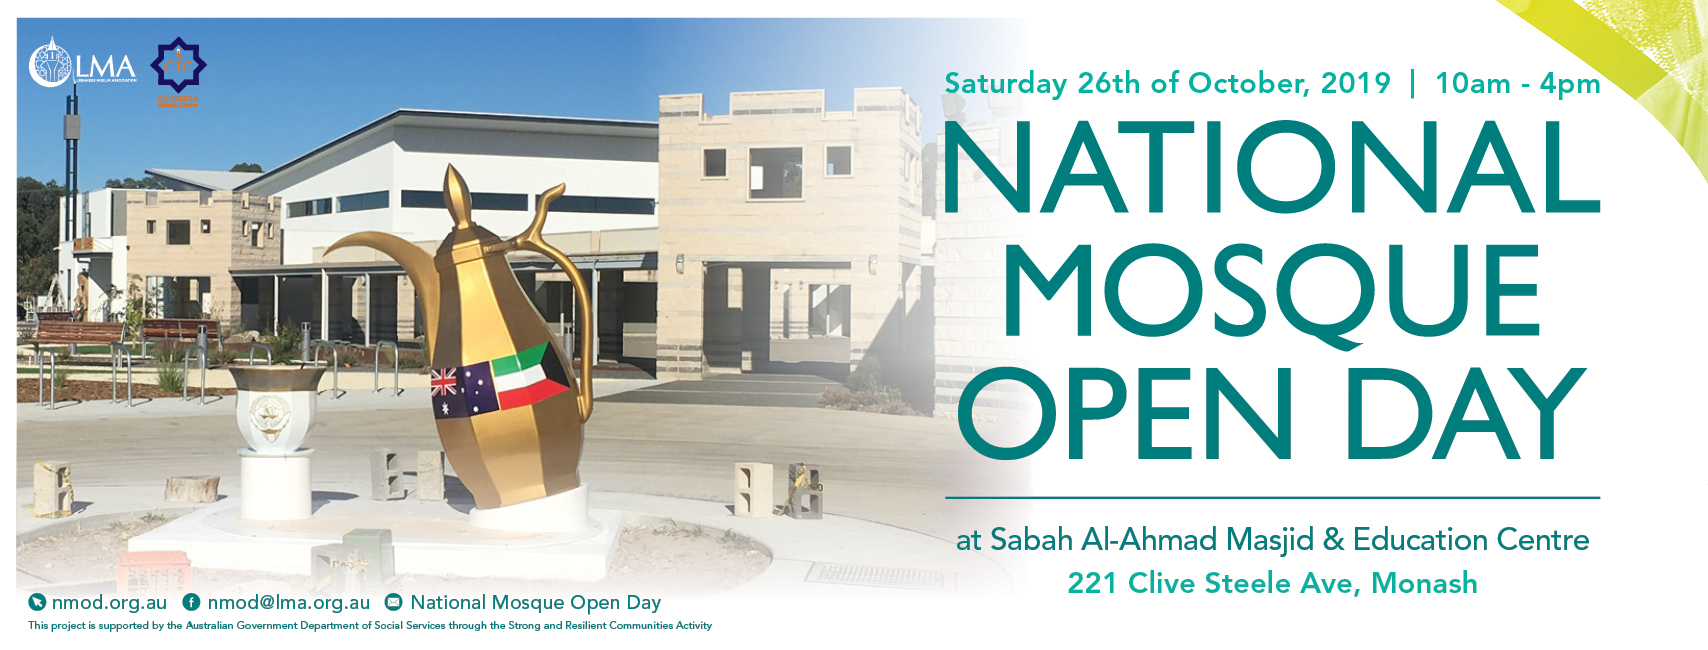 Sabah Al Ahmed Mosque Open Day